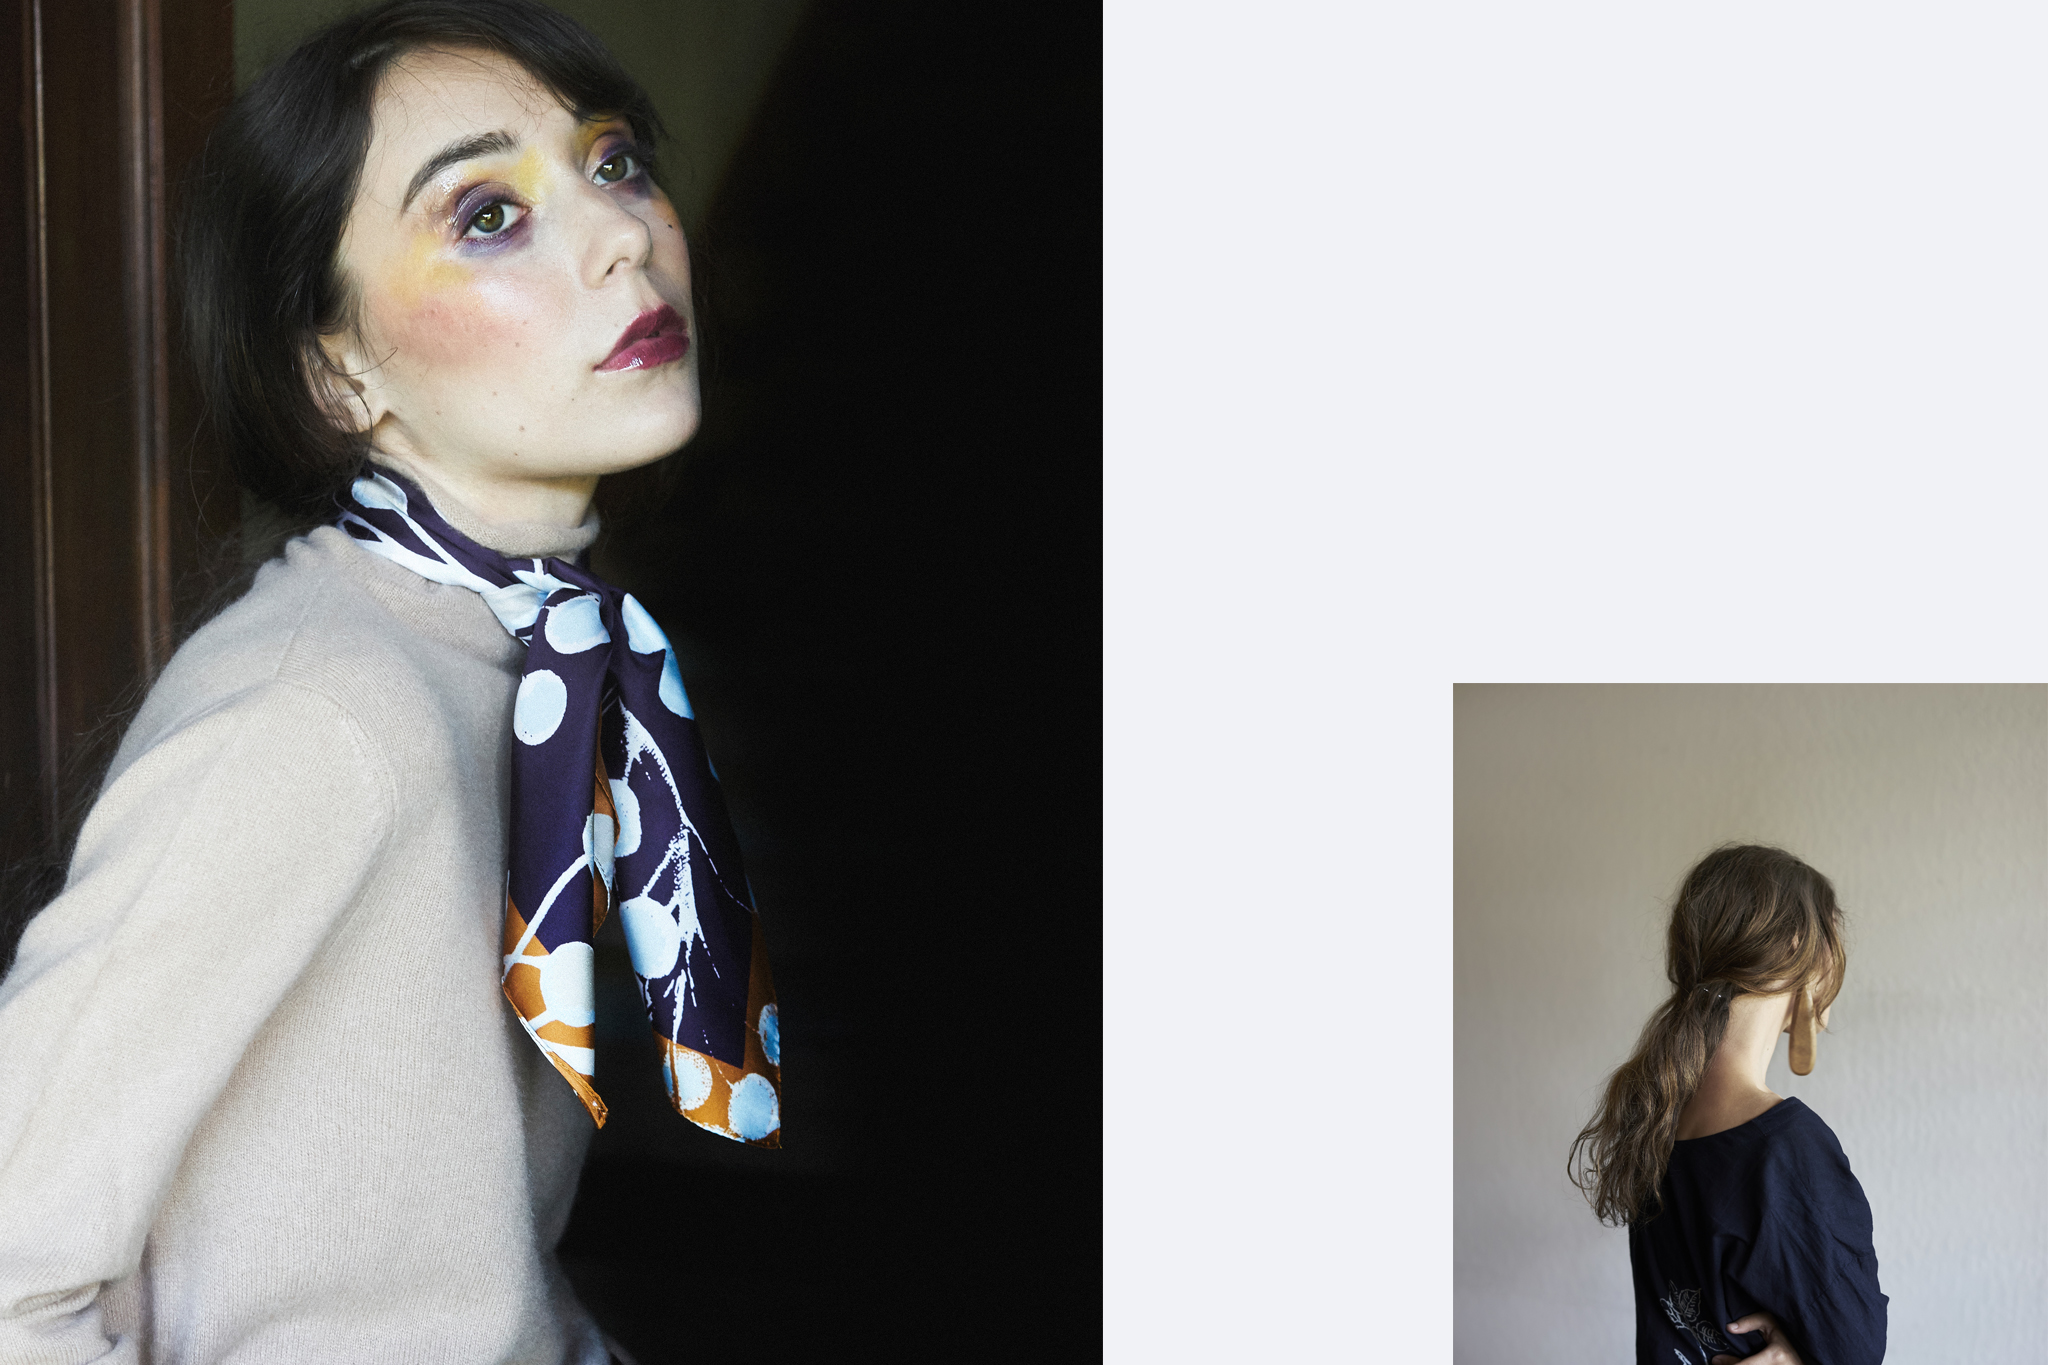 Left//Sweater—Margaret Oleary, Scarf—Epice / Margaret Oleary. Right// Dress—45R, Earring—Editor's own